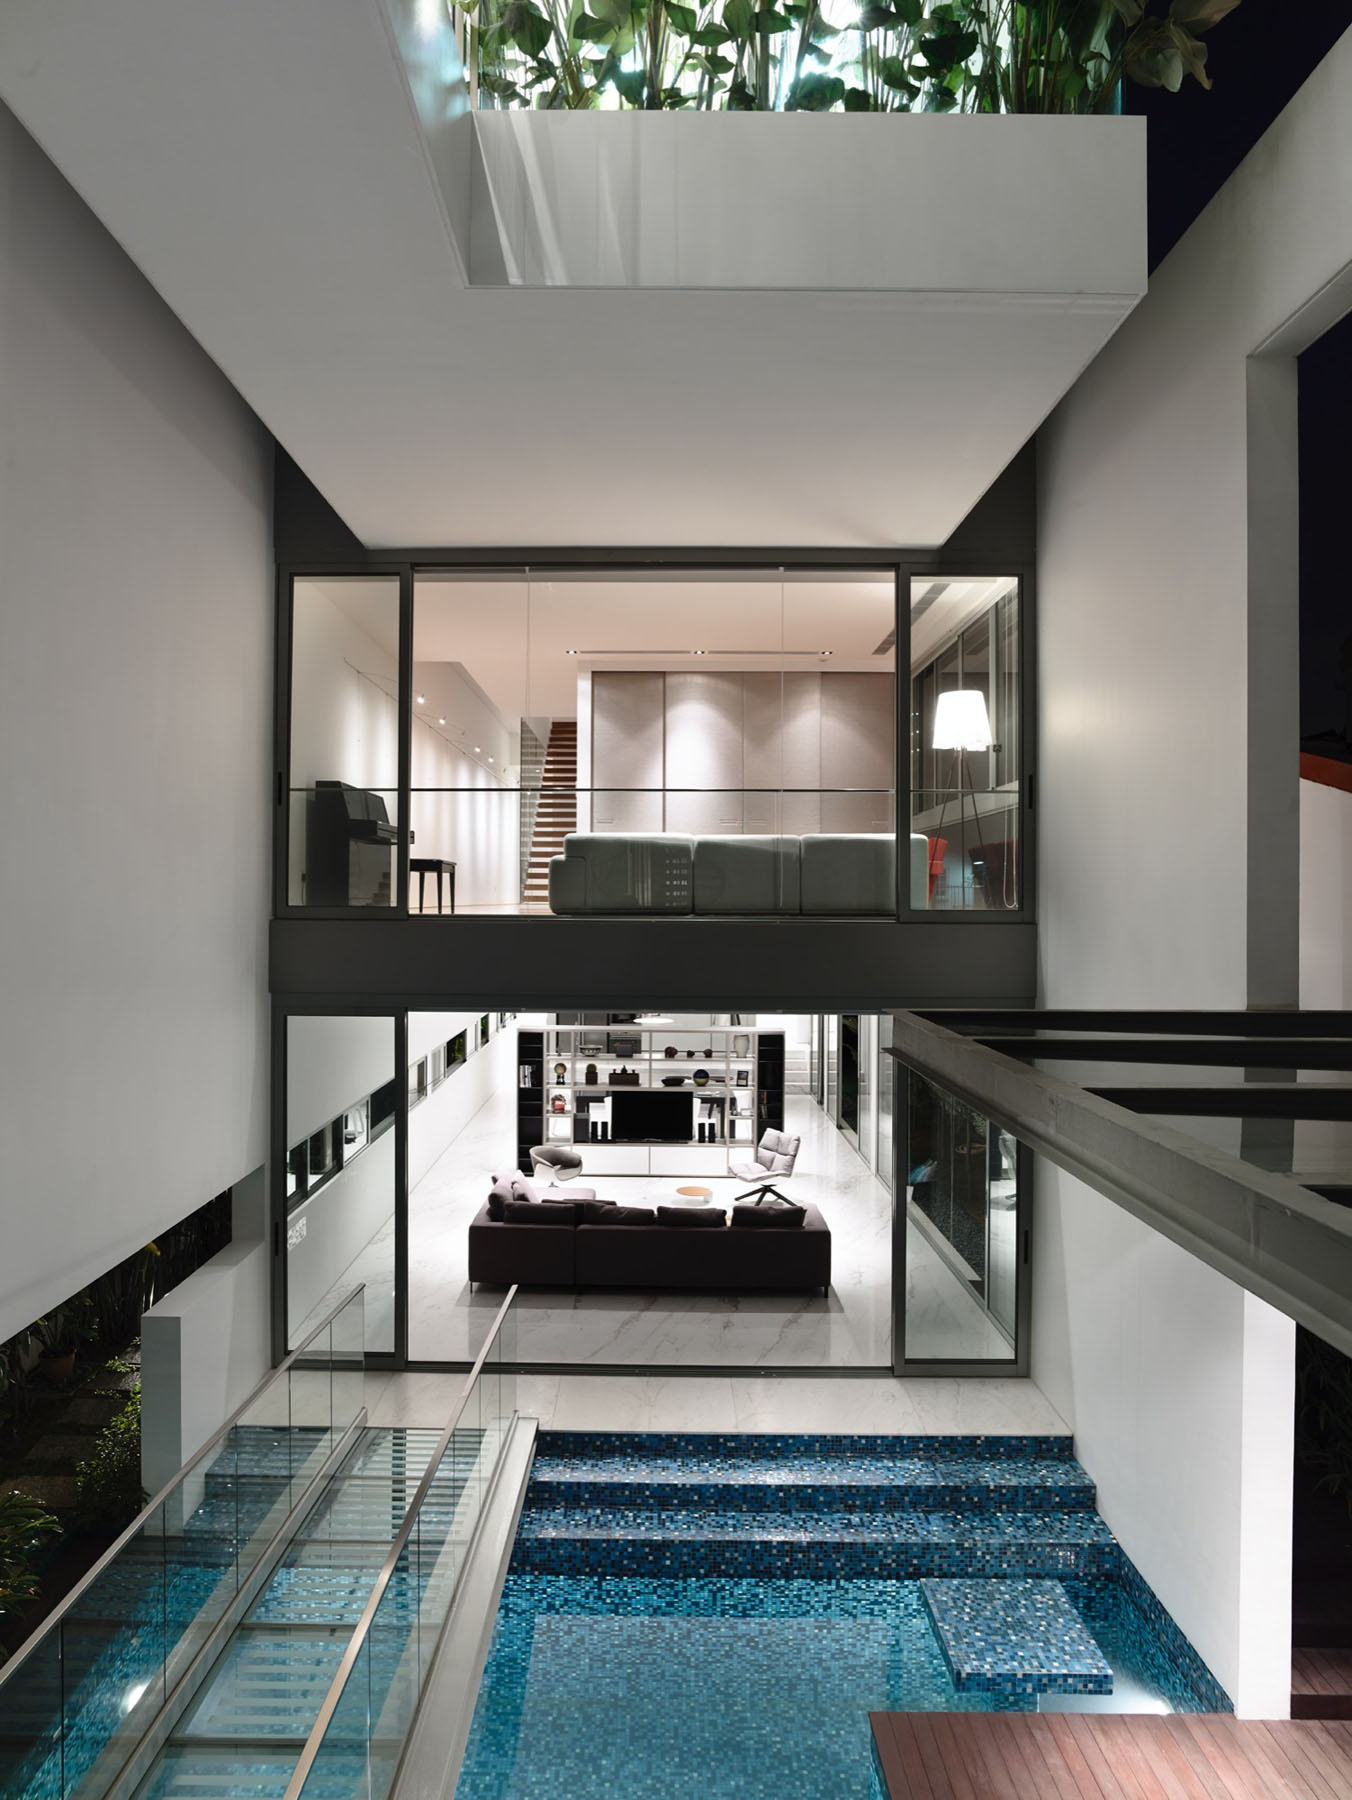 Sleek modern home in singapore with glass bridge over pool - Modern house with pool ...